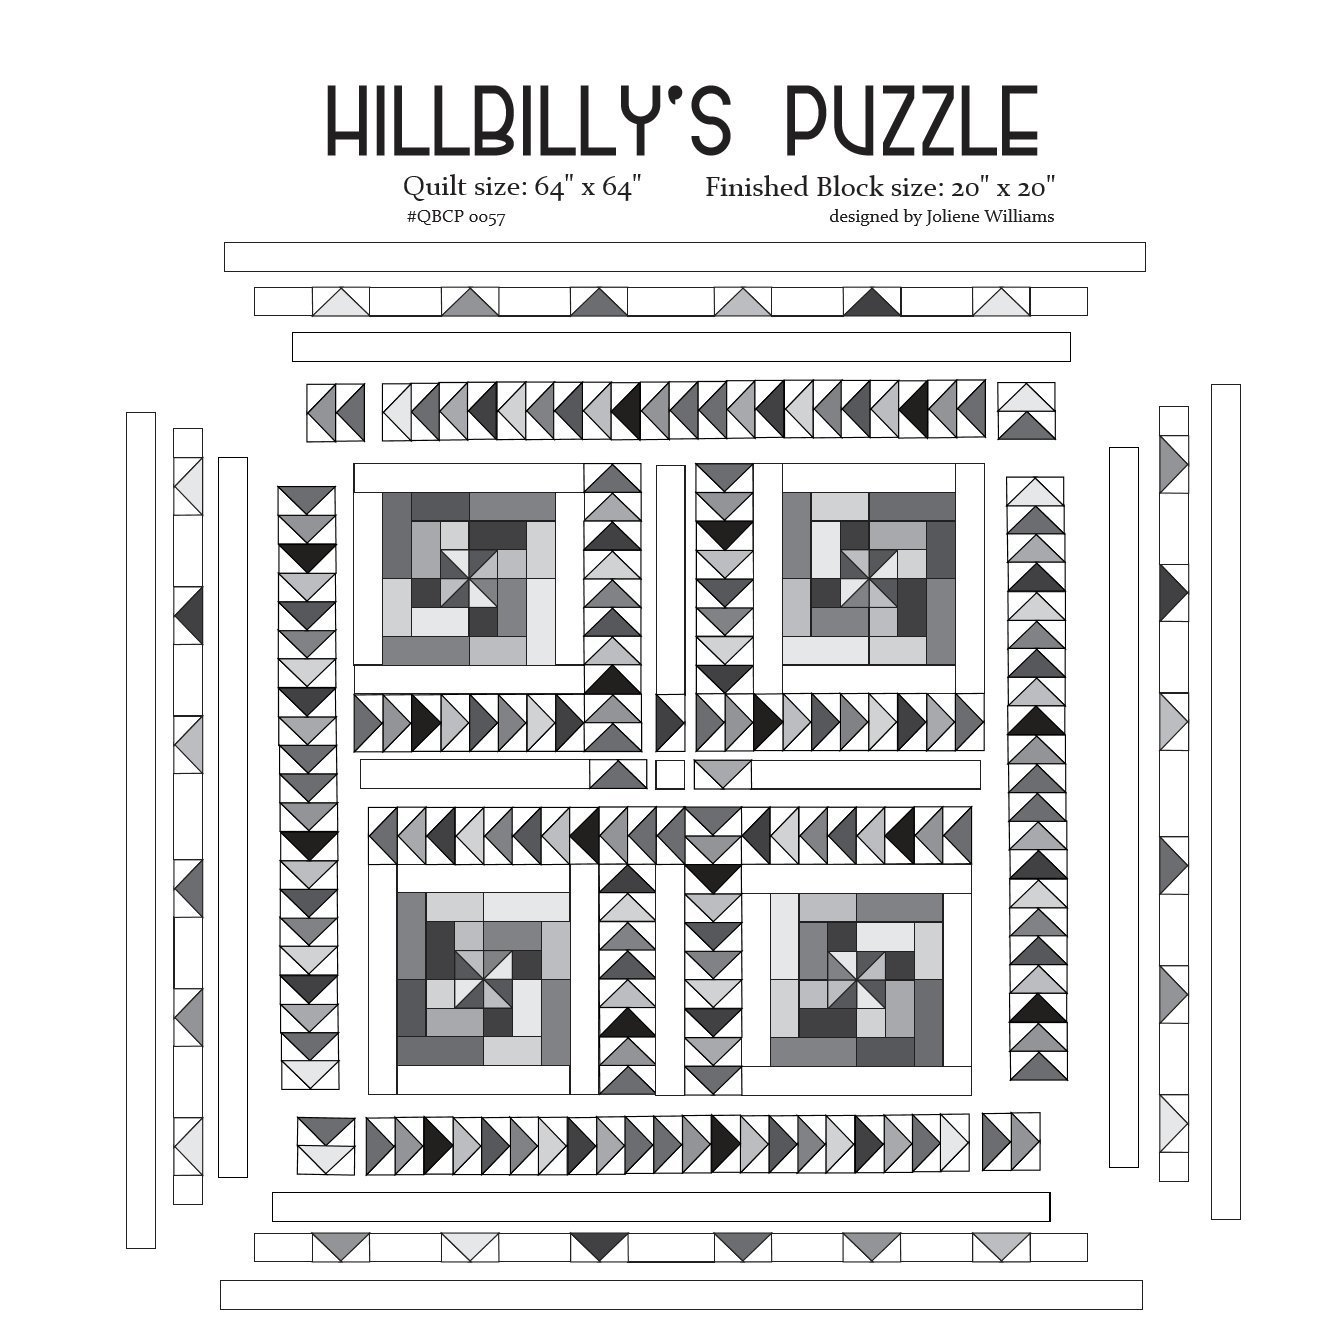 Hillbilly's Puzzle Cutie Pattern